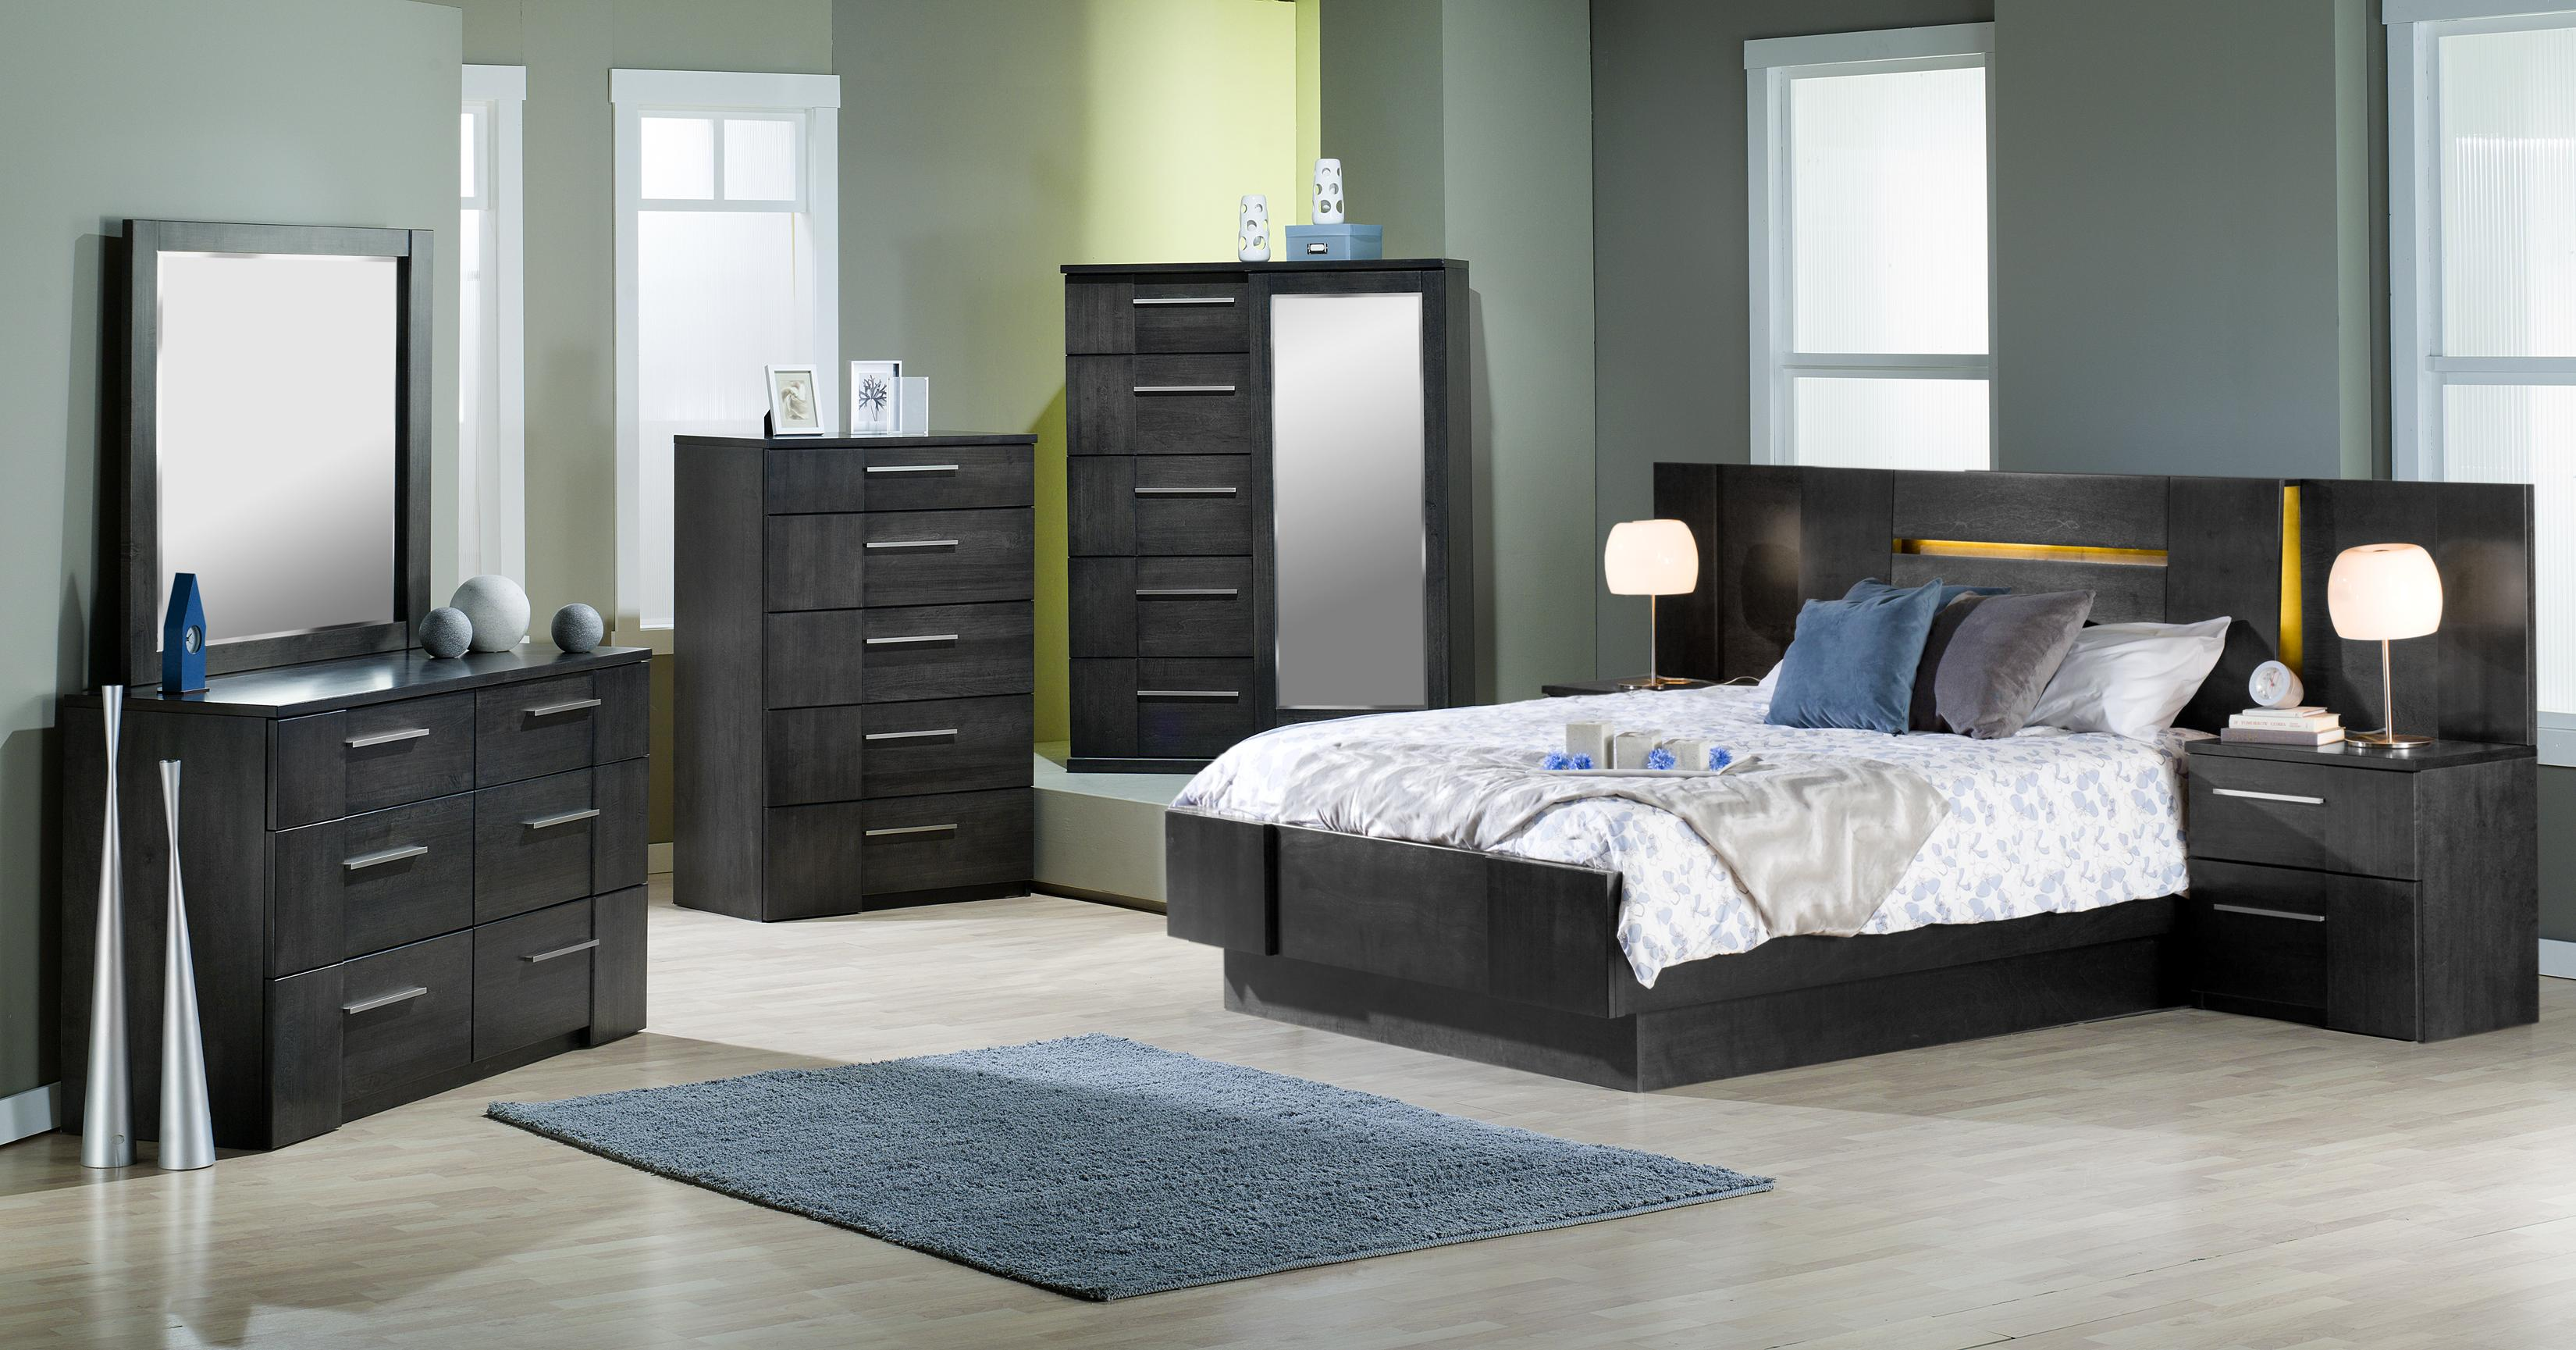 Milano Queen Bedroom Group by Defehr at Stoney Creek Furniture